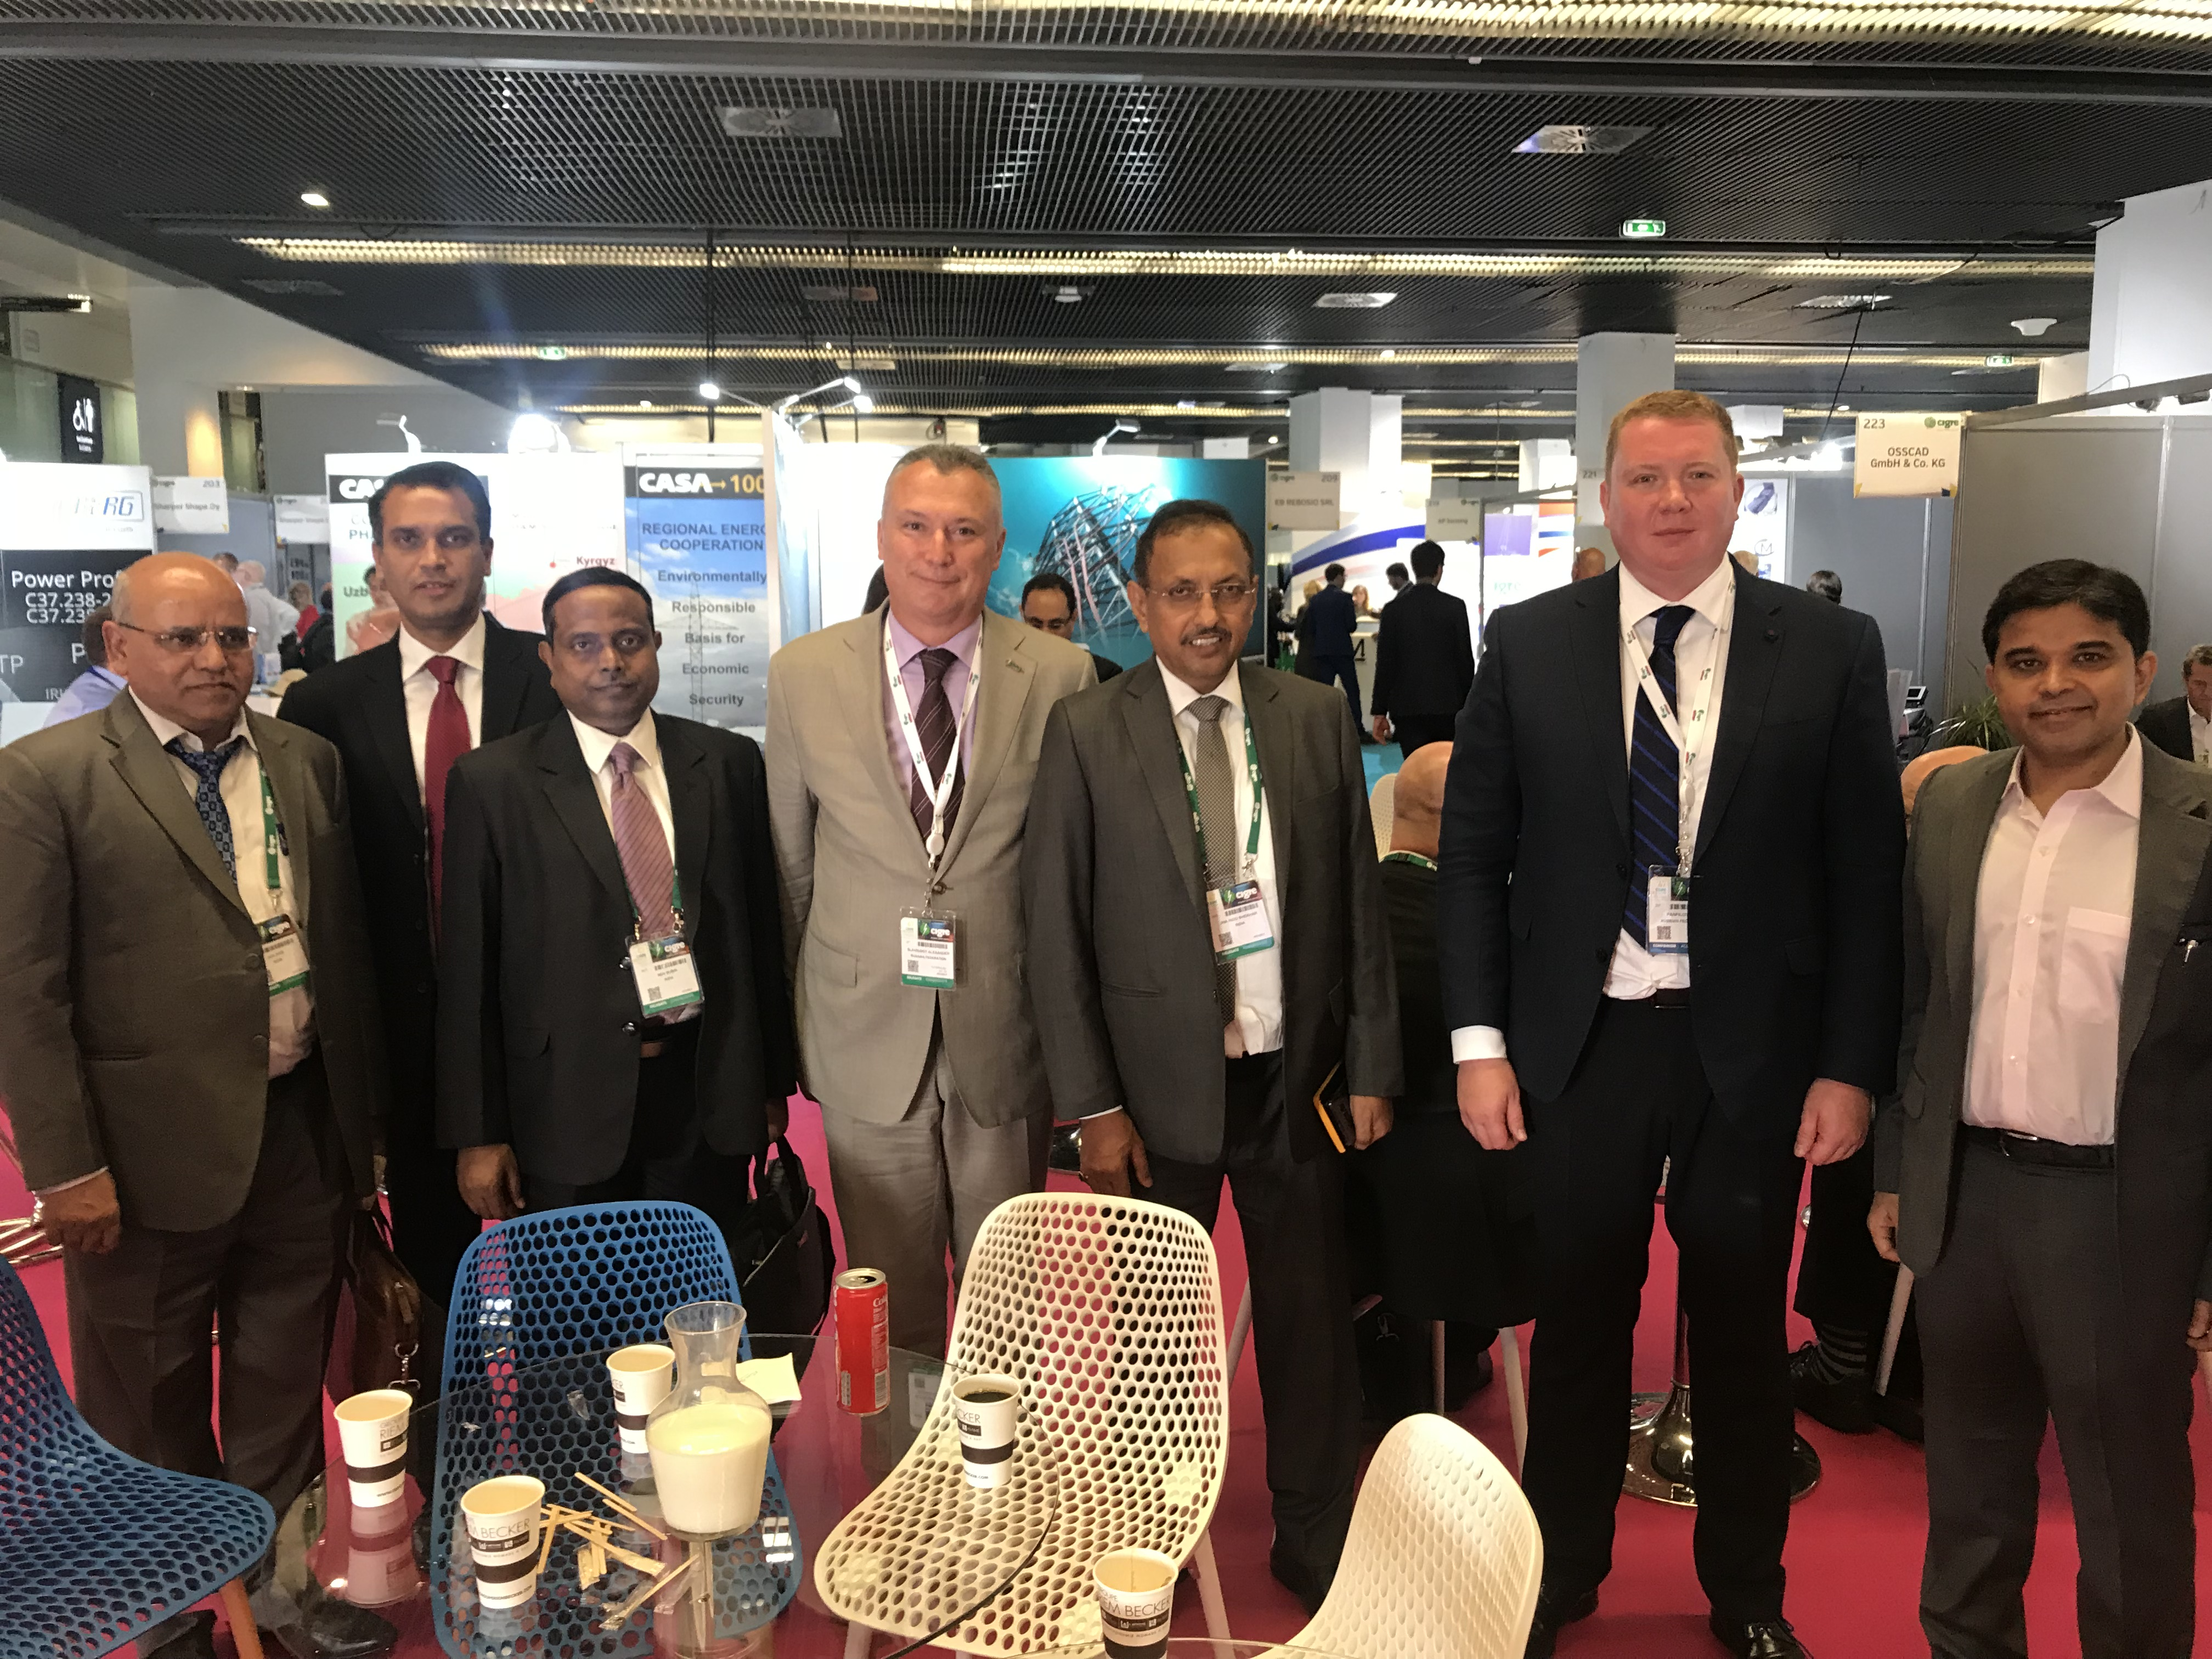 Trilateral meeting at the 47th CIGRE Session. Center – Chairman of the Board of Directors at Izolyator Alexander Slavinsky, L-R: Chairman and General Manager of PowerGrid I. S. Jha (I.S. Jha), Commercial Director and 1st Dpty CEO at Izolyator Ivan Panfilov and Executive Director at Mehru Electrical & Mechanical Engineers (P) Ltd. Sandeep Prakash Sharma